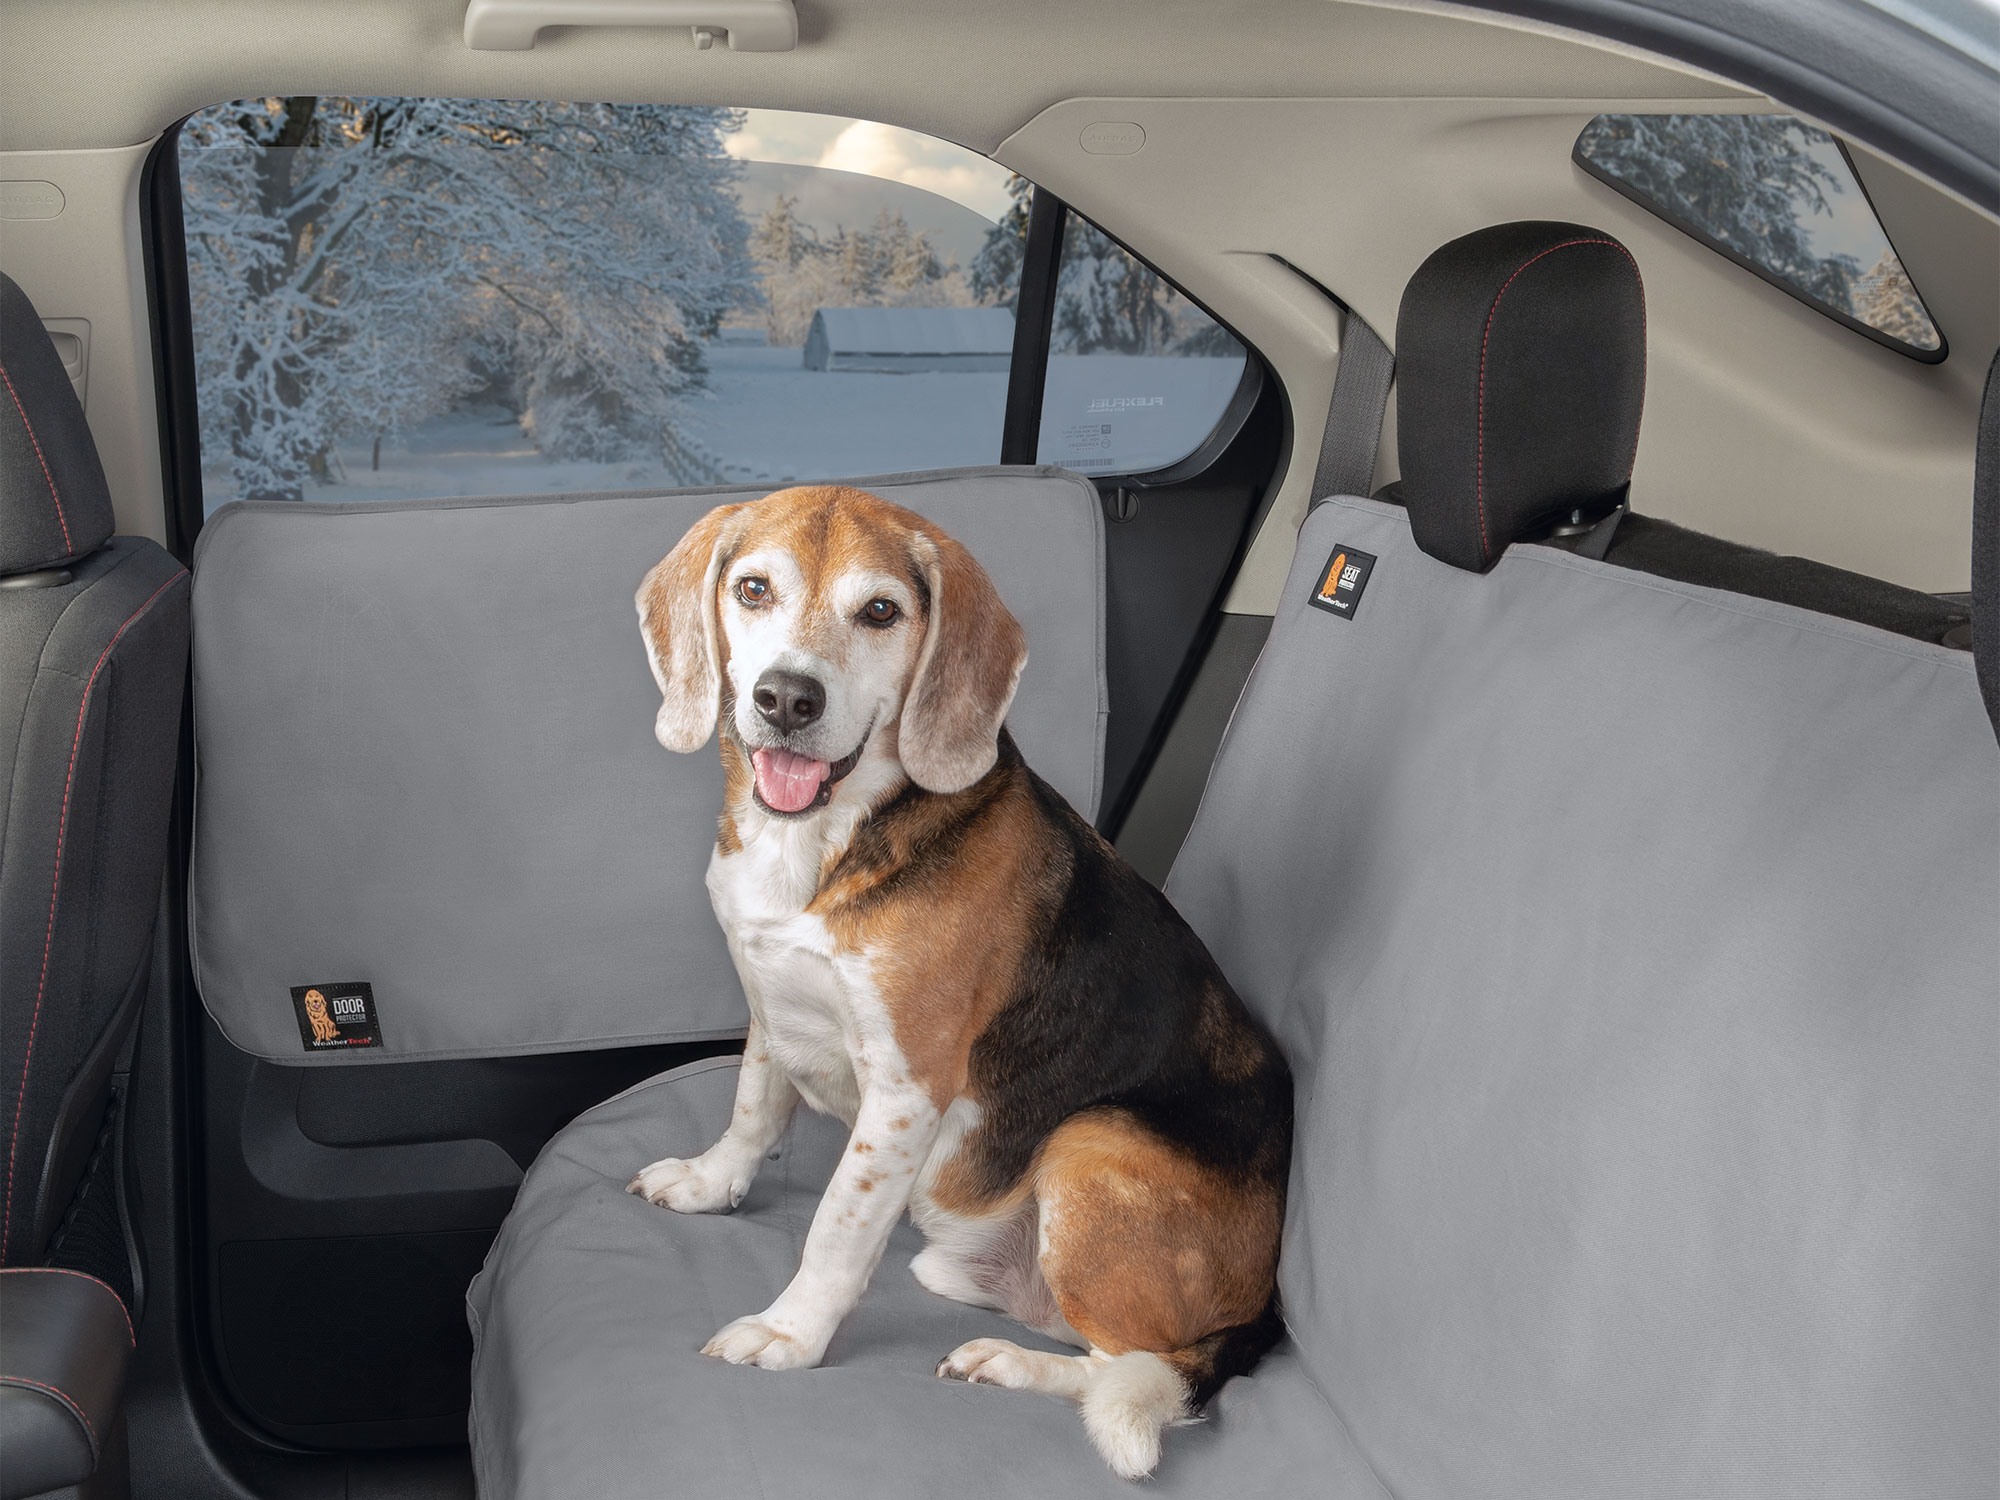 Dog sitting in back seat on Seat Protector